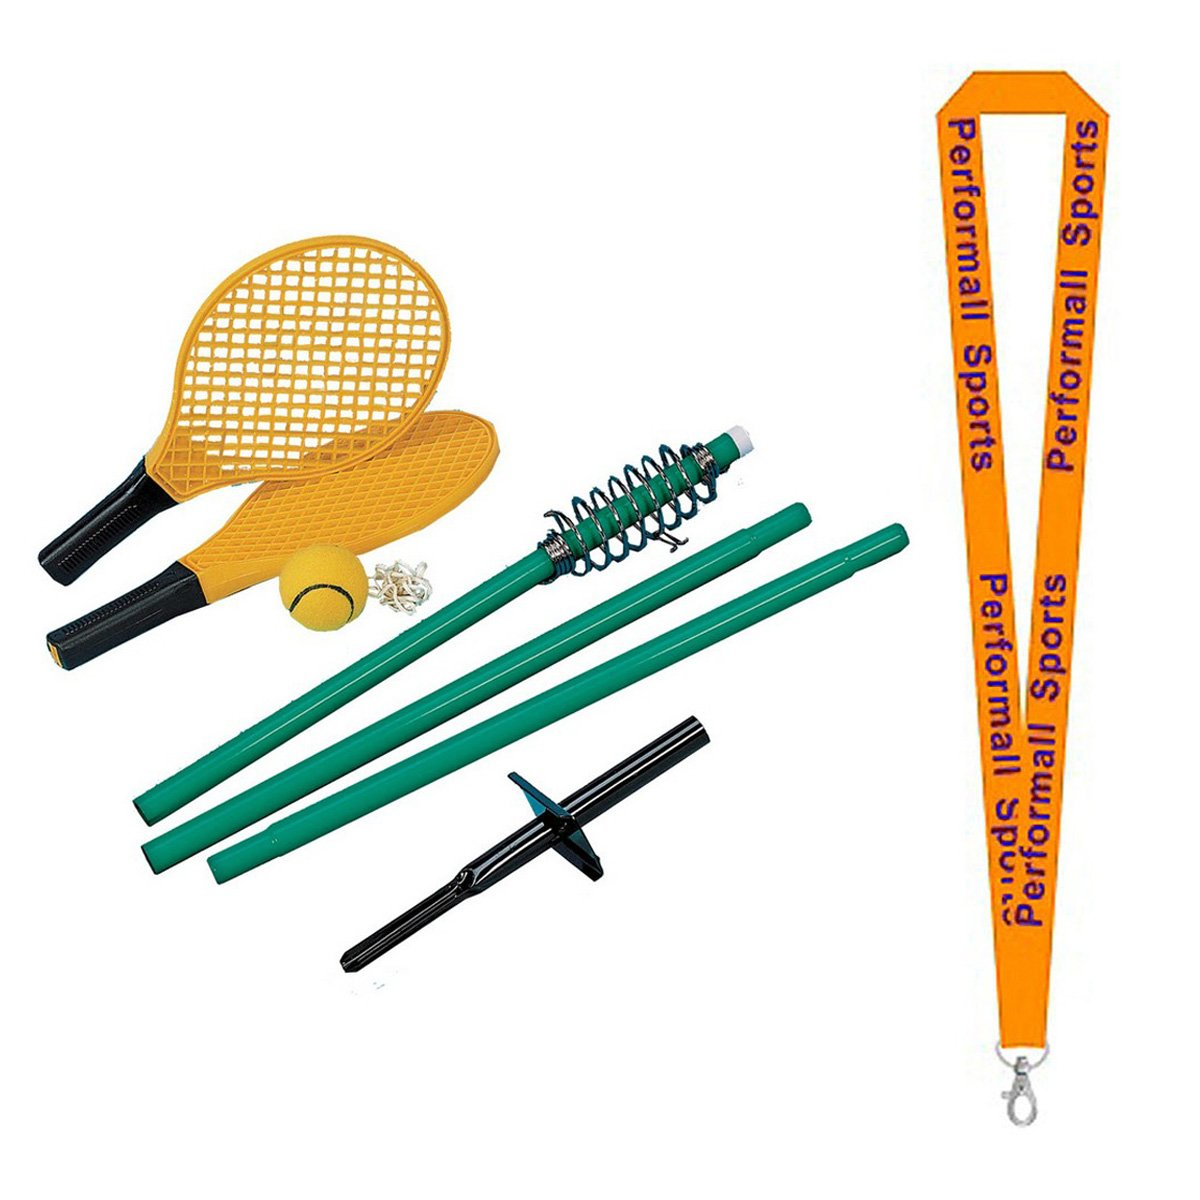 Champion Sports Tether Tennisゲームセットwith 1 performall Lanyard ttgame-1p B01FSZ520Y